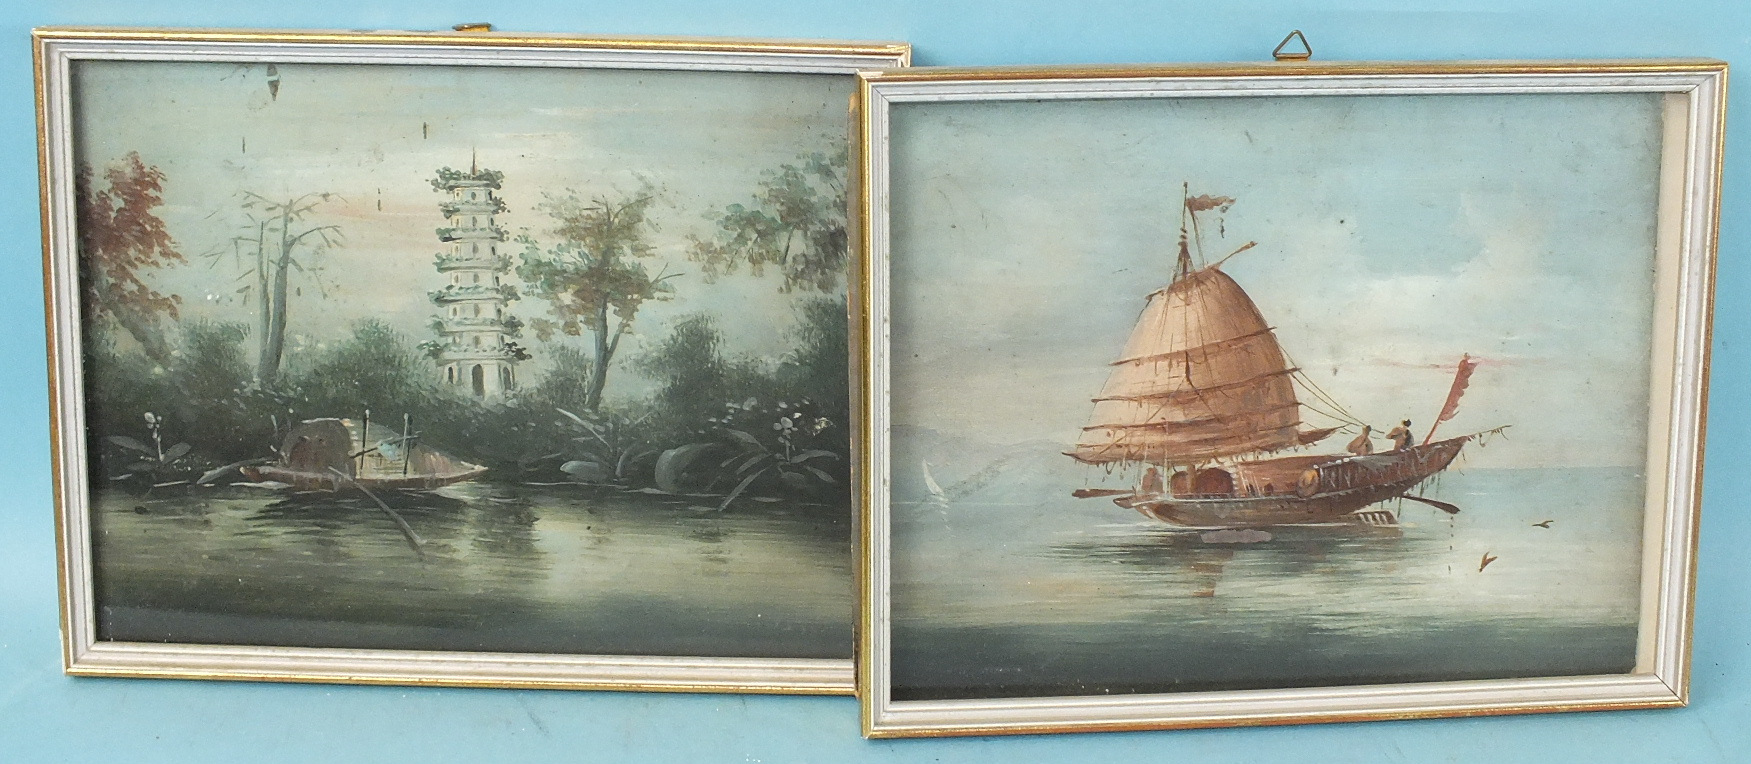 Lot 87 - Chinese Export School, a group of four unsigned Chinese watercolours, junks and landscape scenes, 20